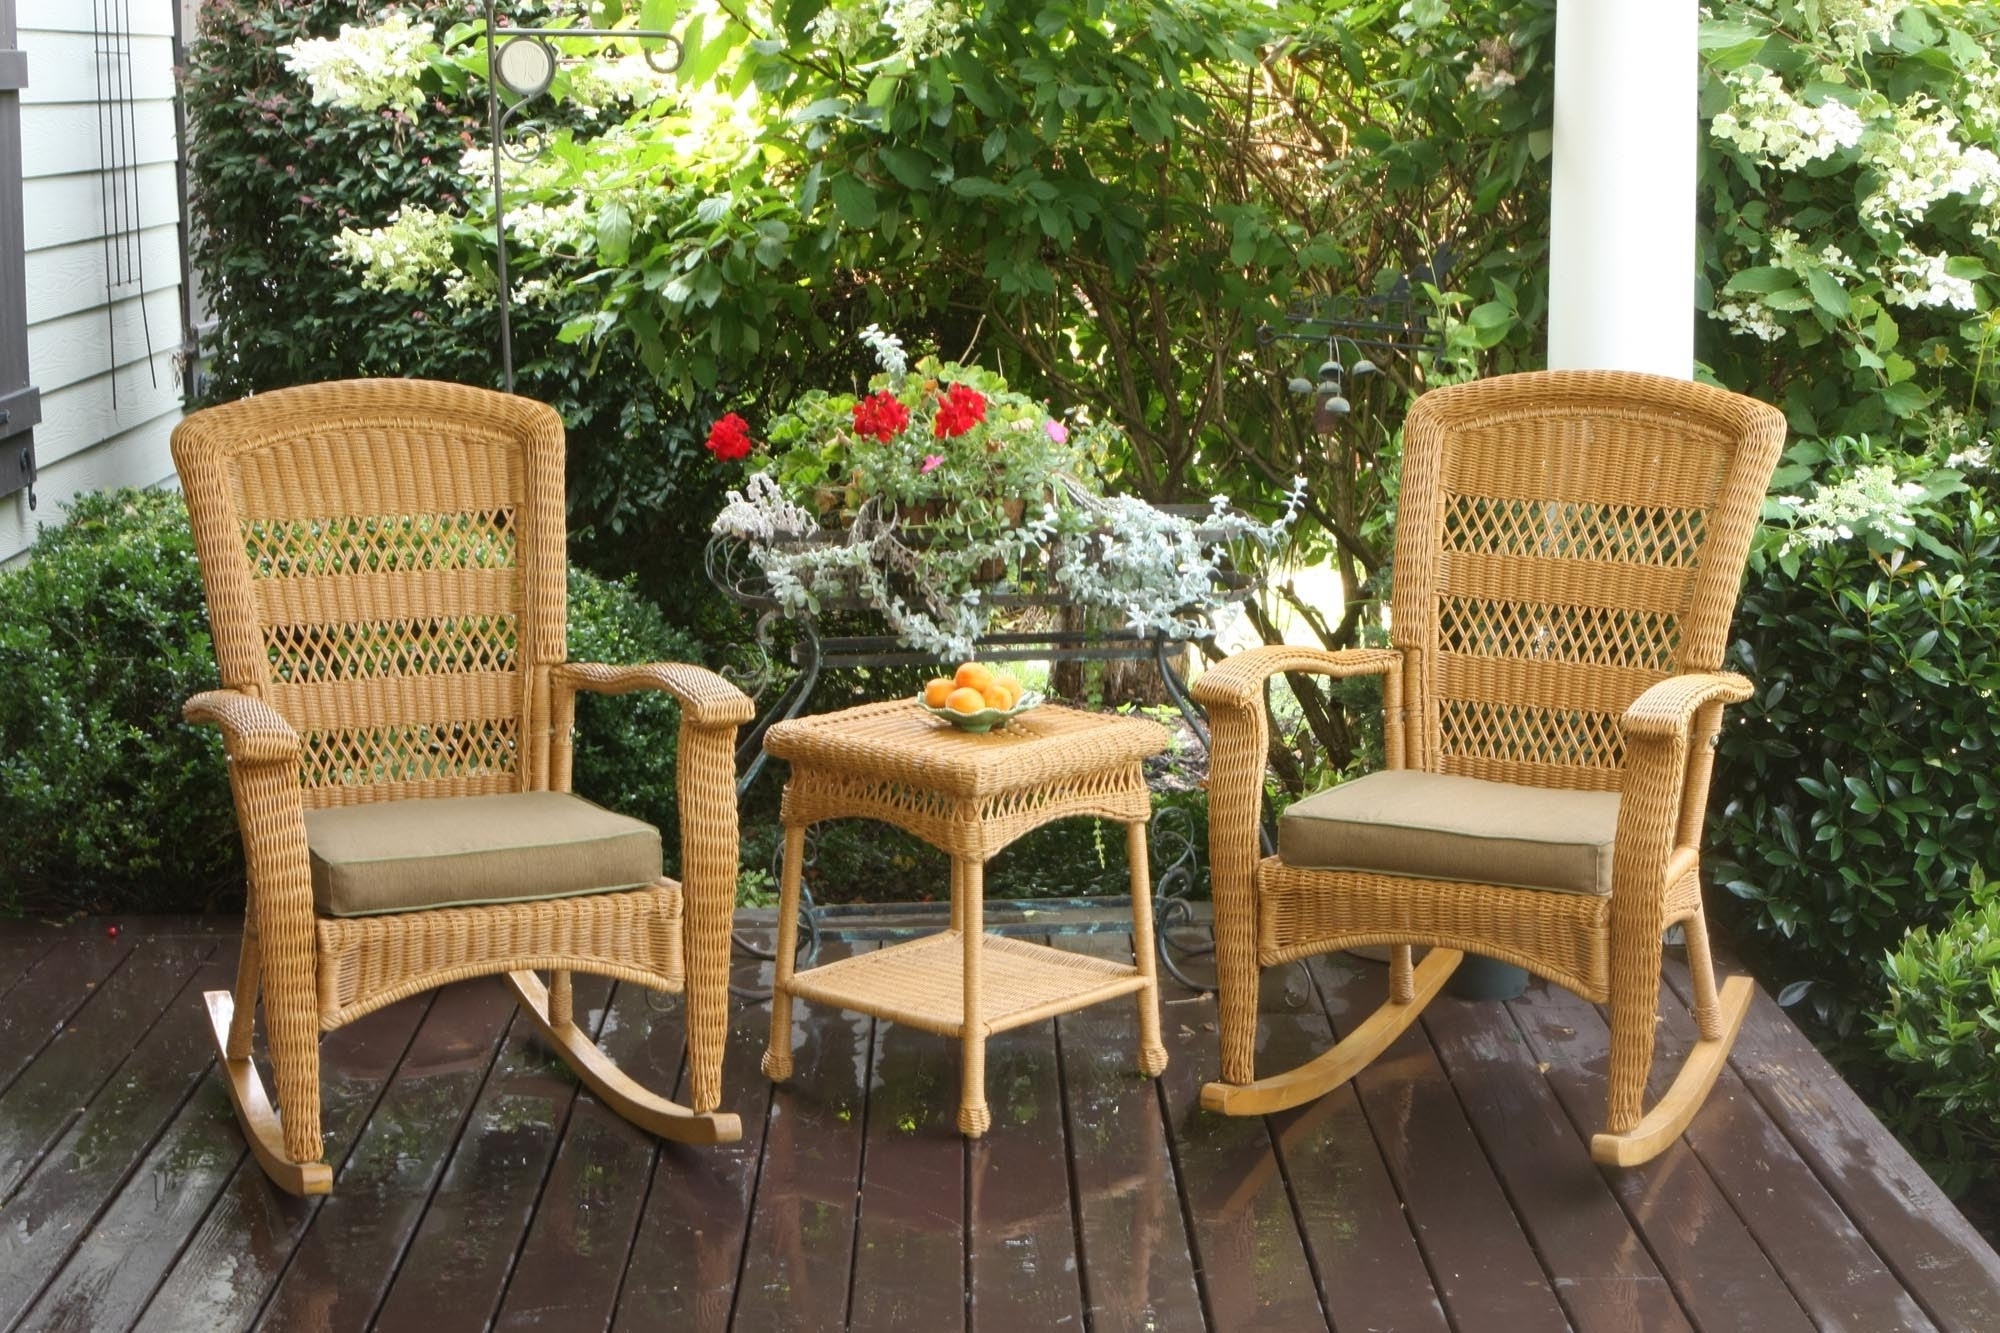 Outside Rocking Chair Sets Regarding Trendy Portside Plantation Rocking Chair Set Tortuga Outdoor – Youtube (View 6 of 15)